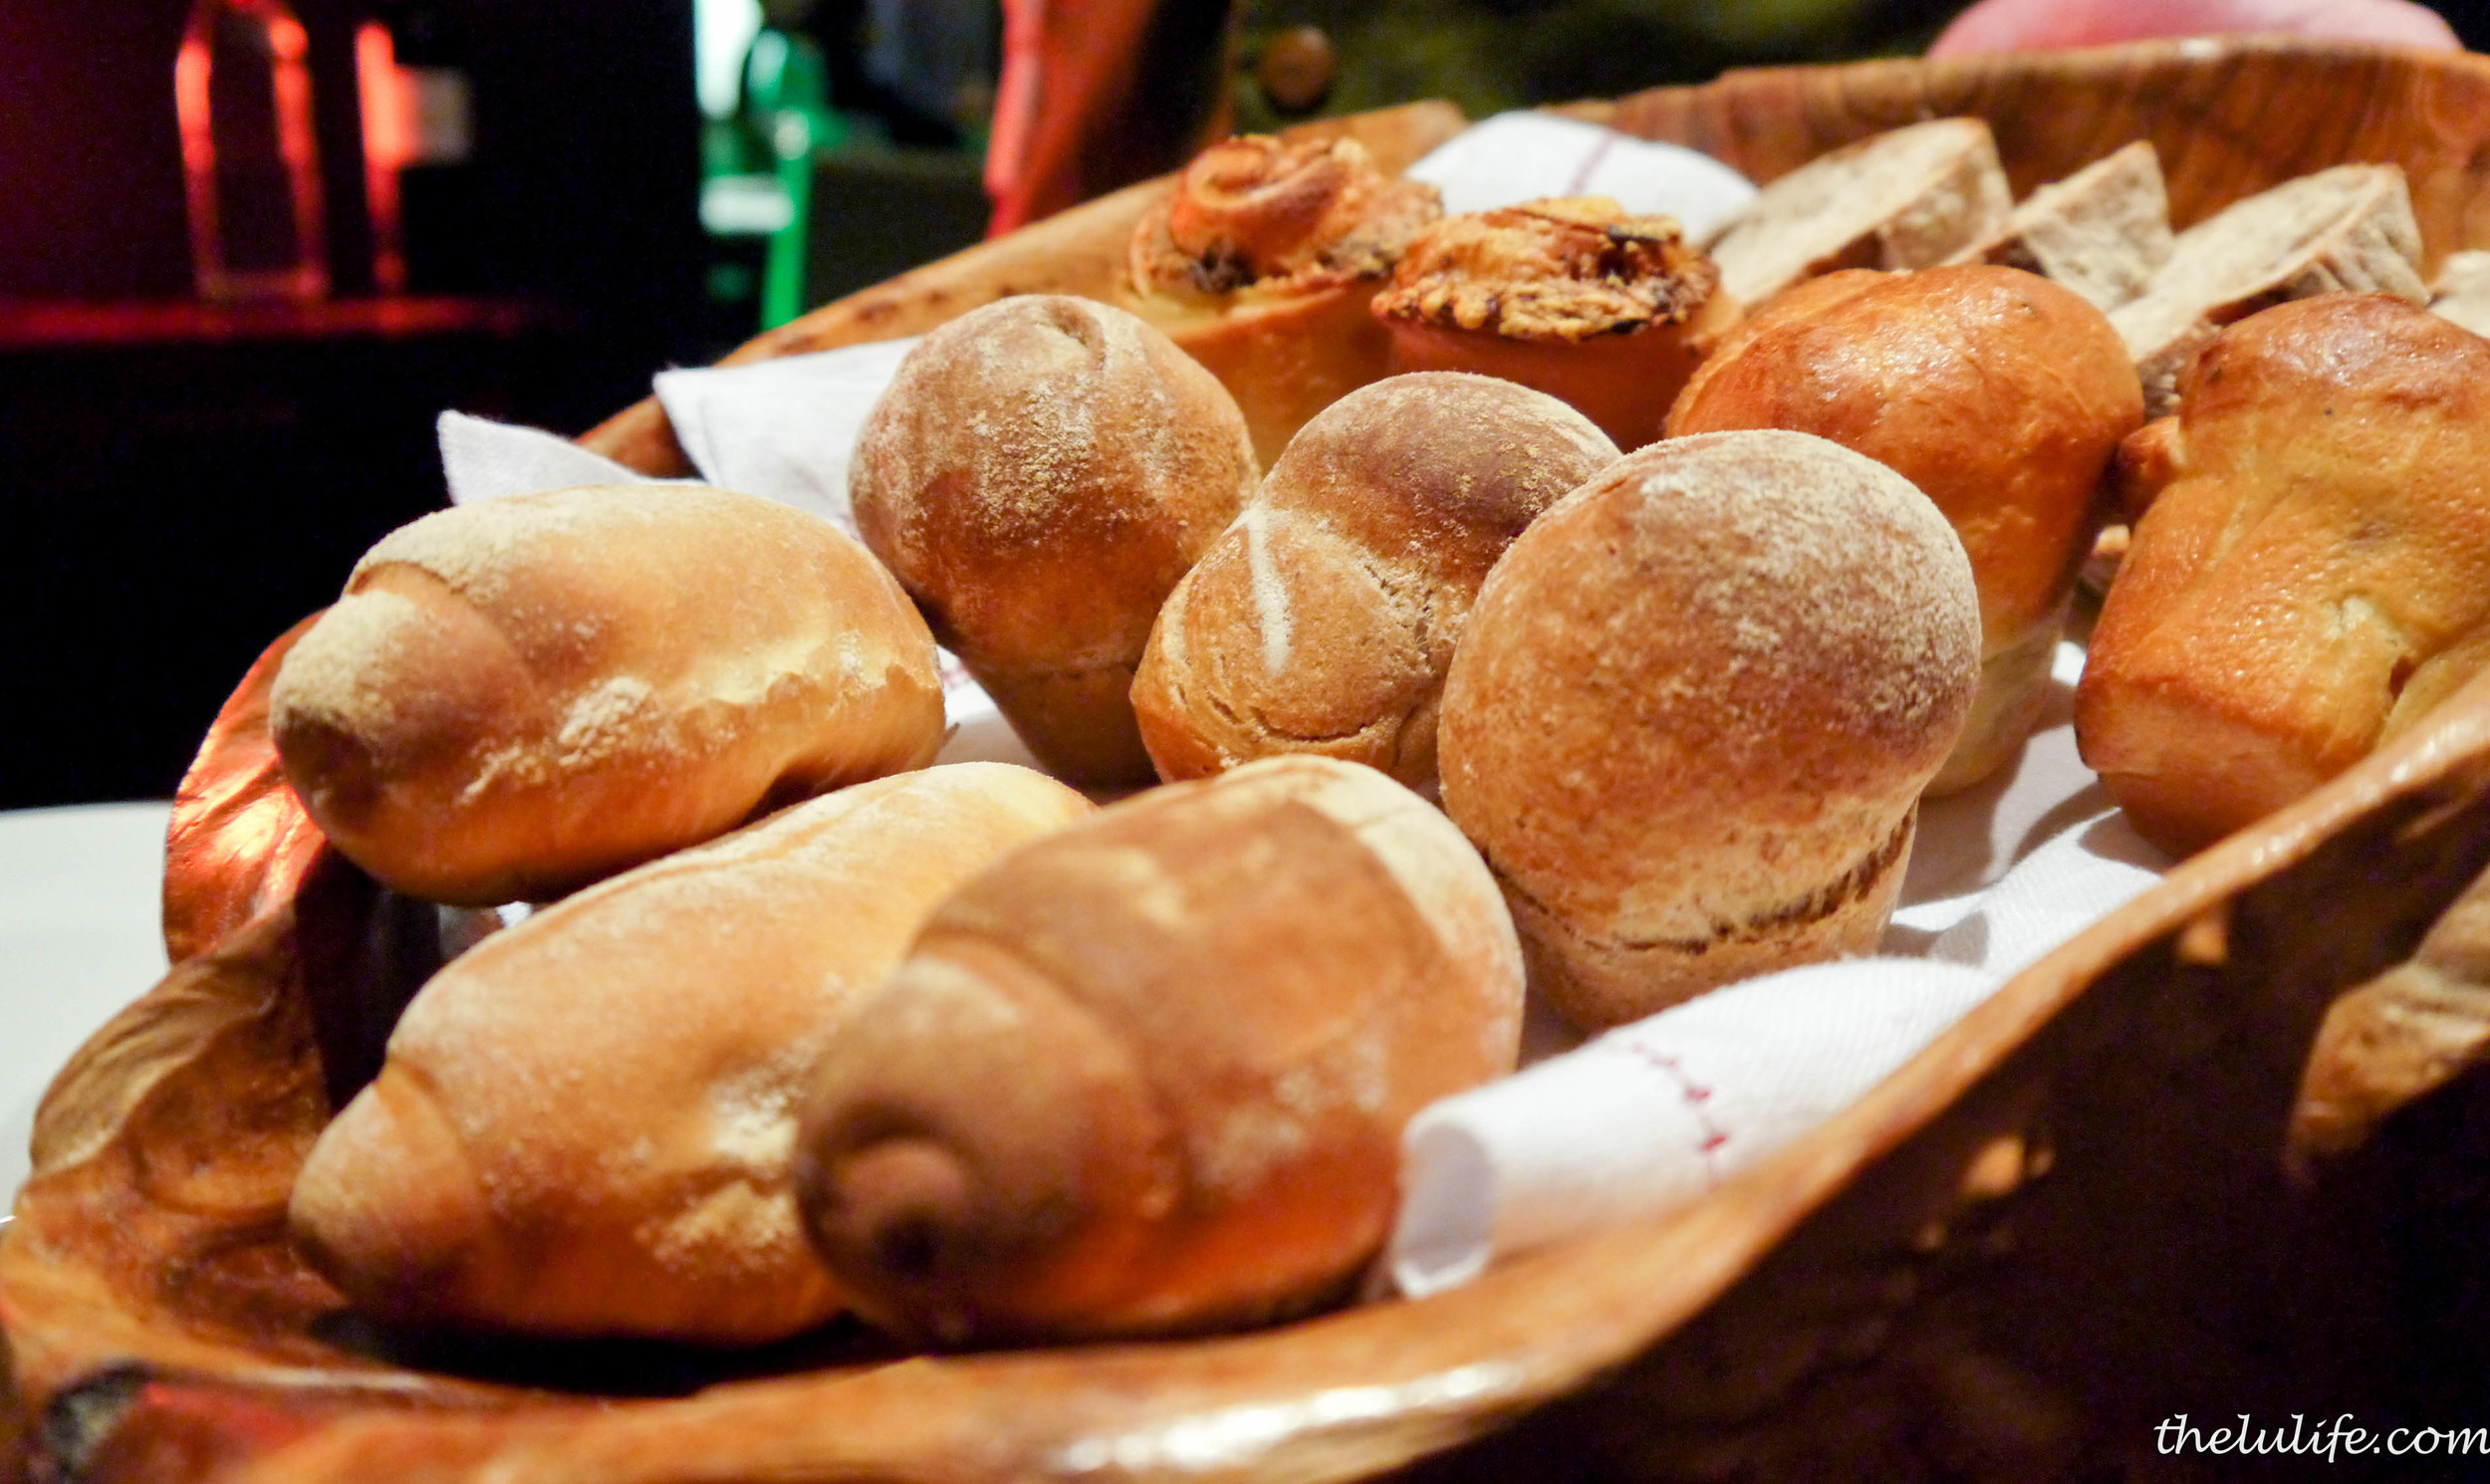 Breads: Guinness, olive and parmesan, almond and brioche, and raisin